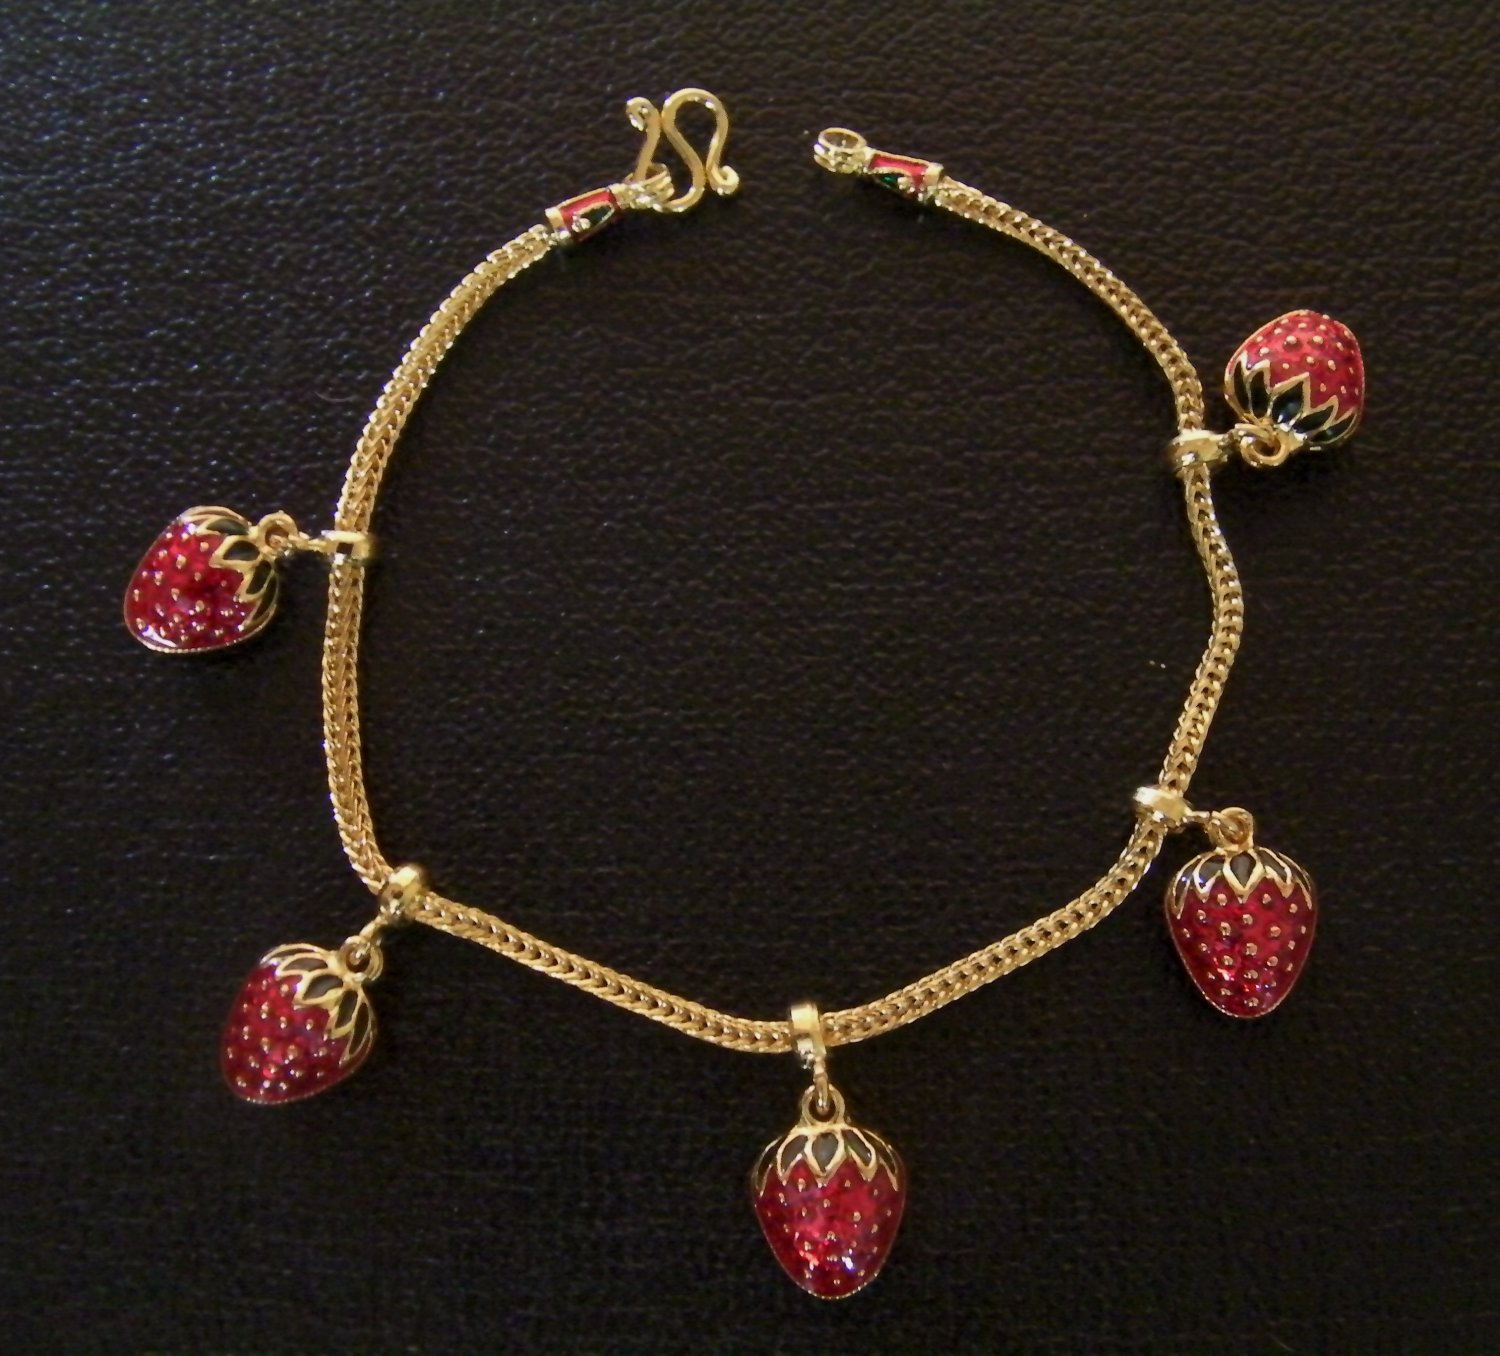 7.1 Inch lovely strawberry 24K gold filled chain bracelet 133